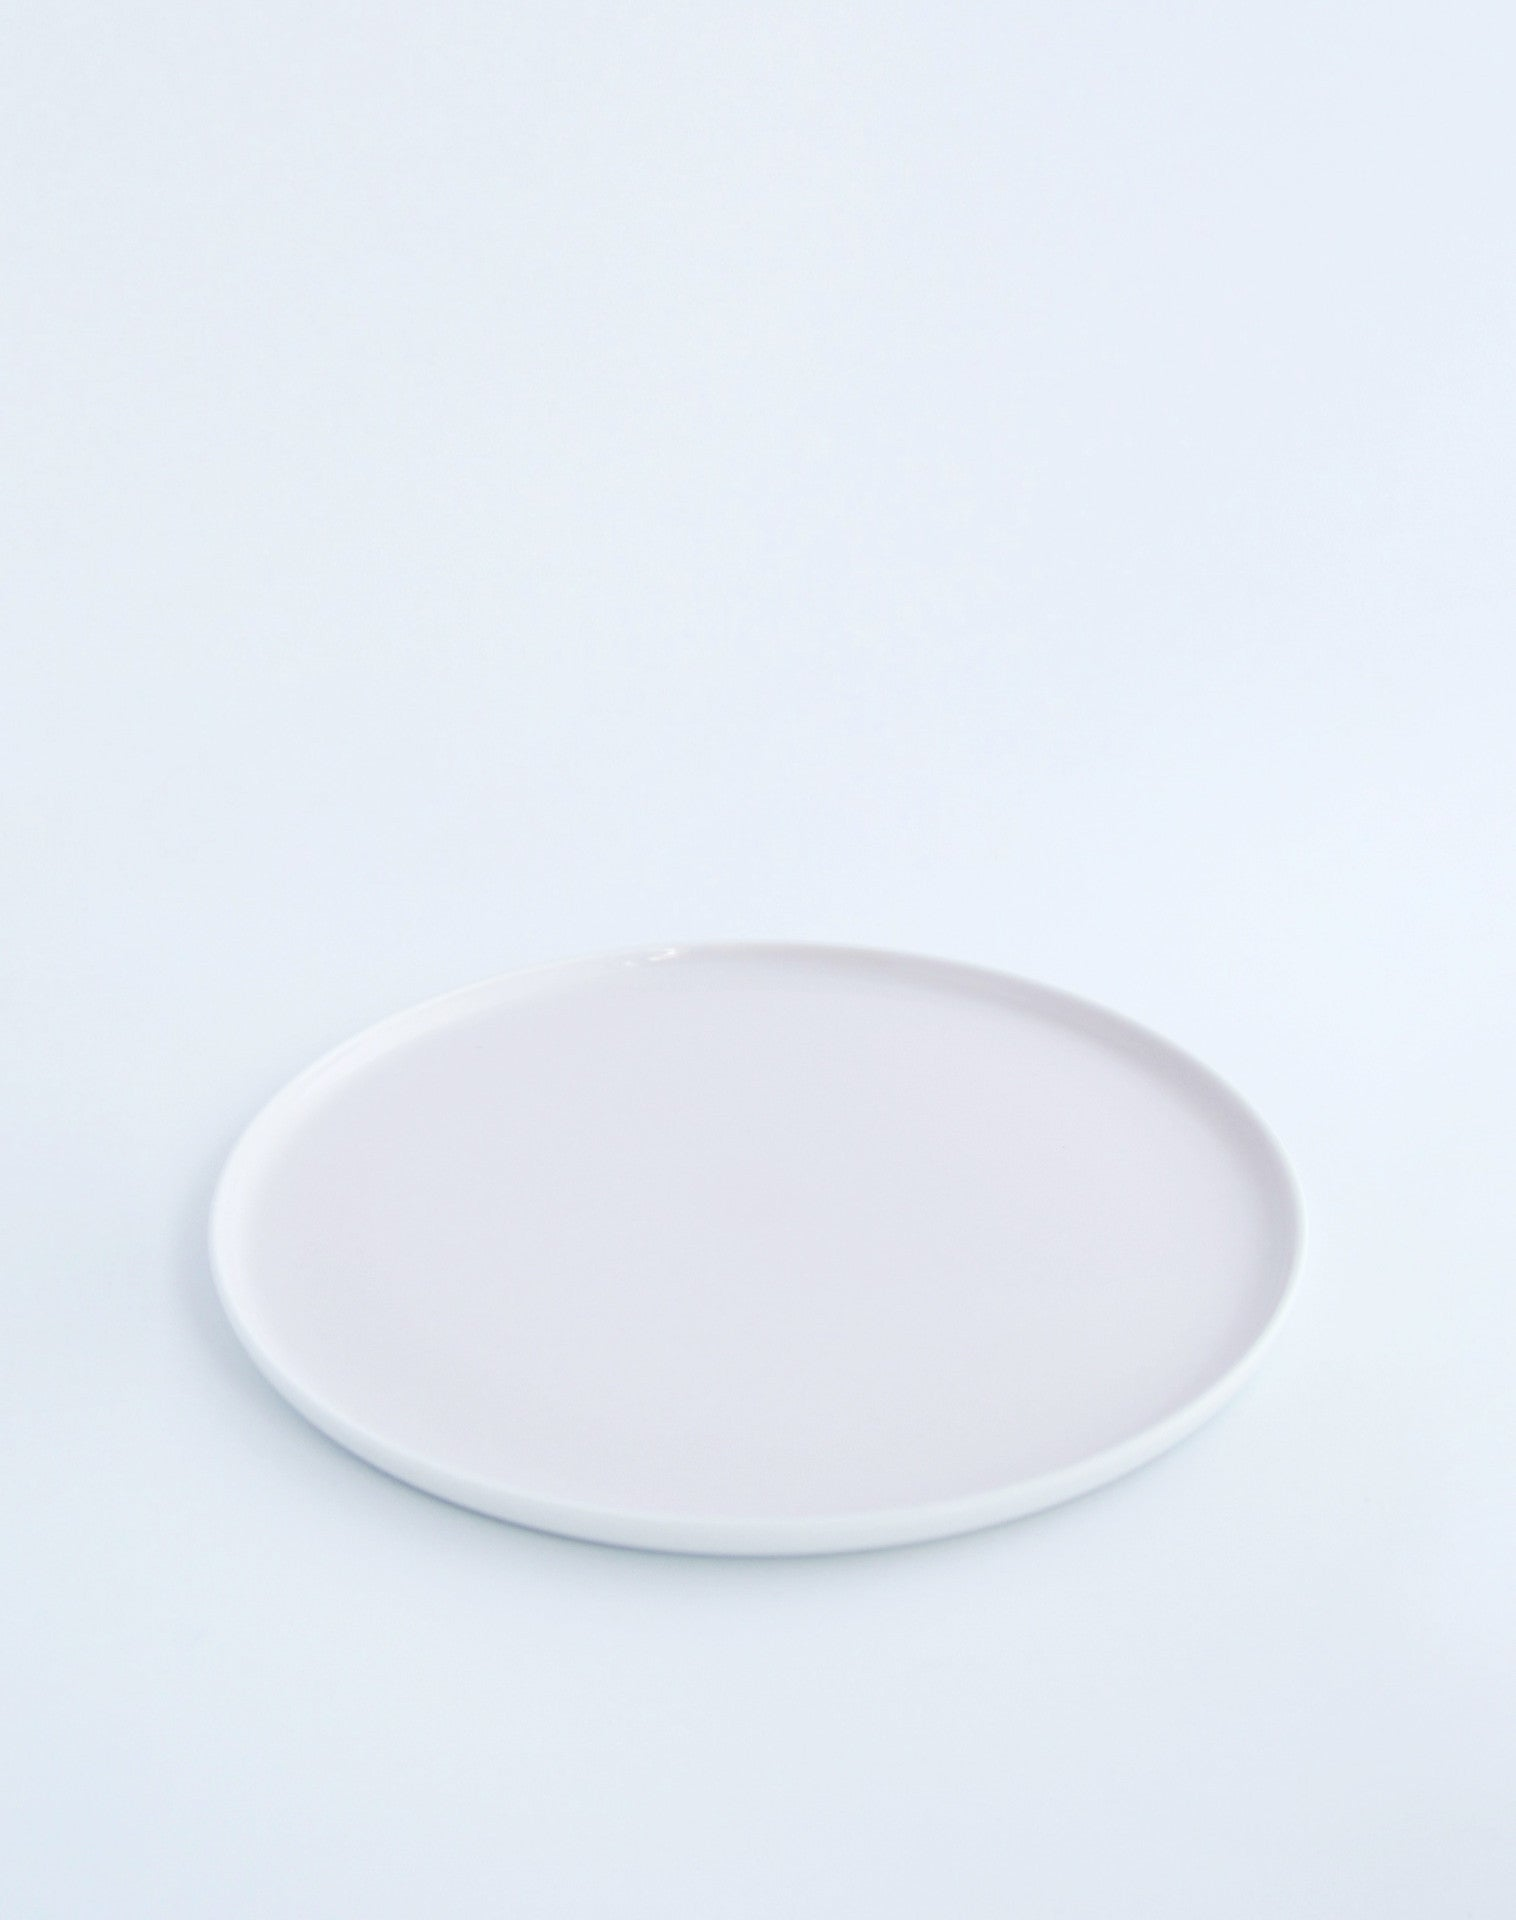 Scholten & Baijings 1616 arita japan dinner plate